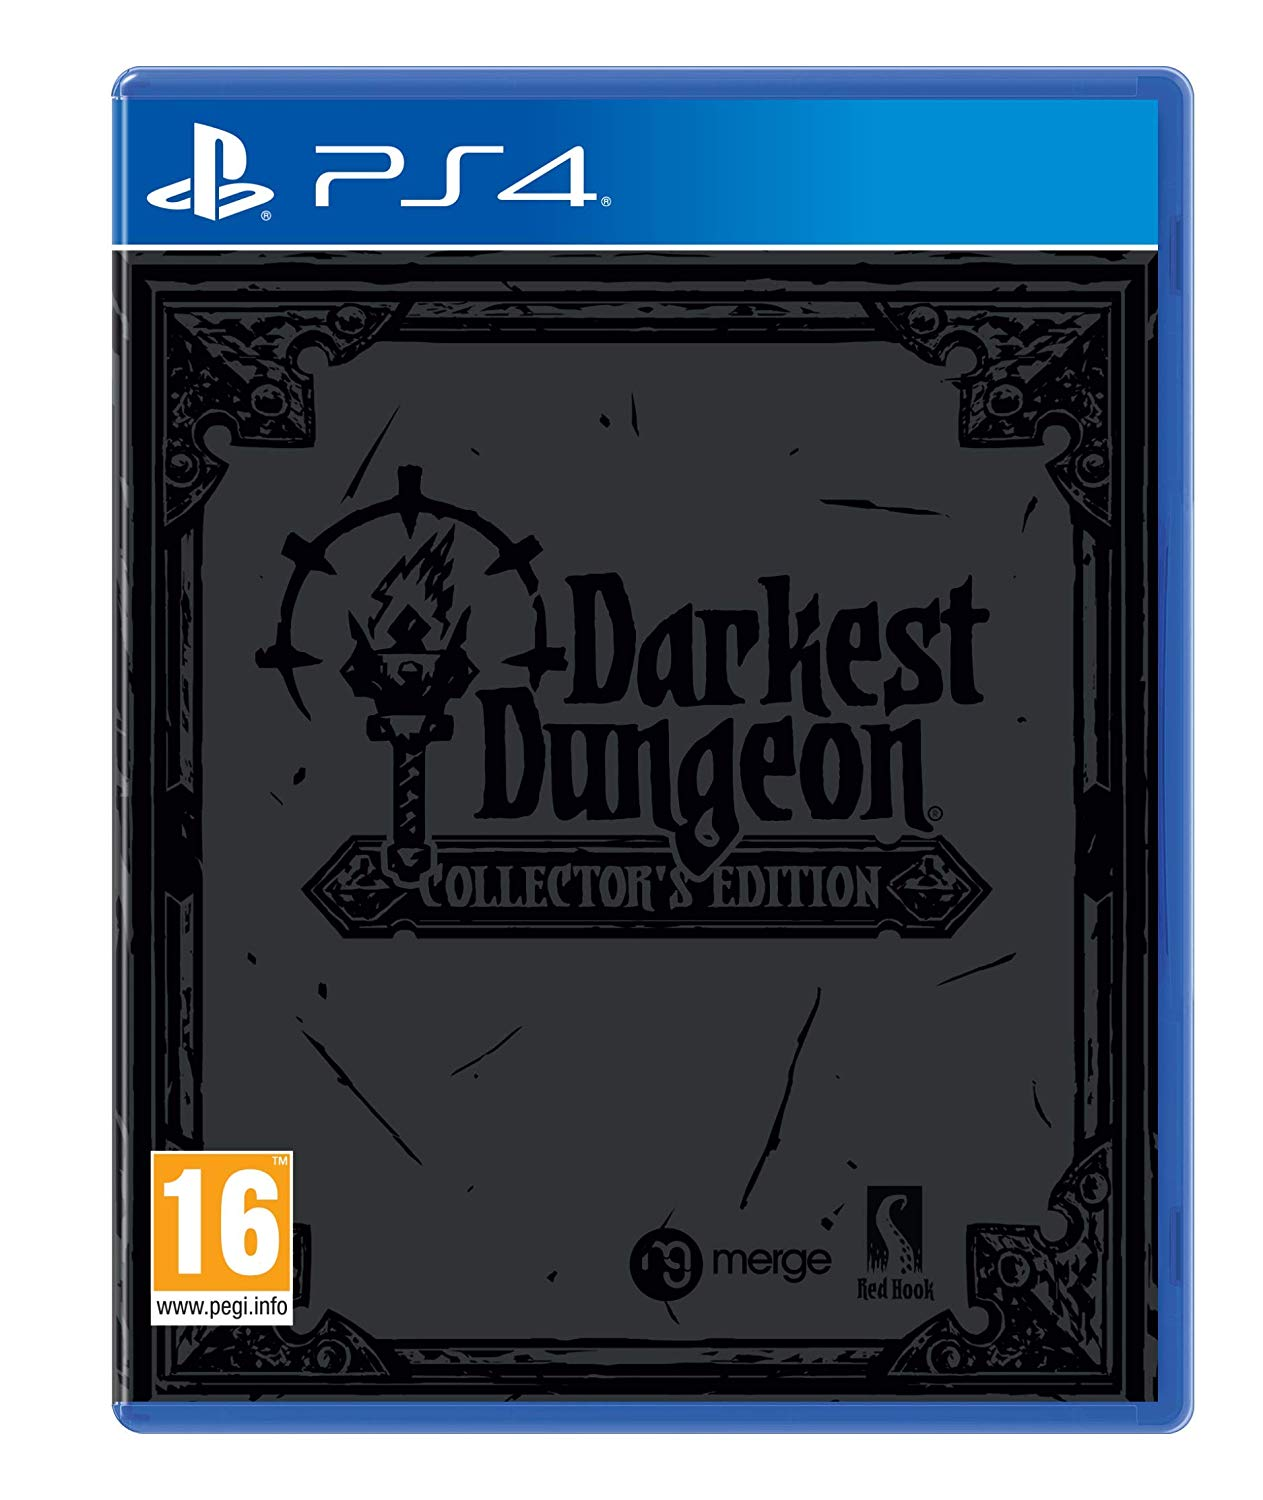 Darkest Dungeon Collector's Edition PS4, PS4, DVDMEGASTORE, DVDMEGASTORE